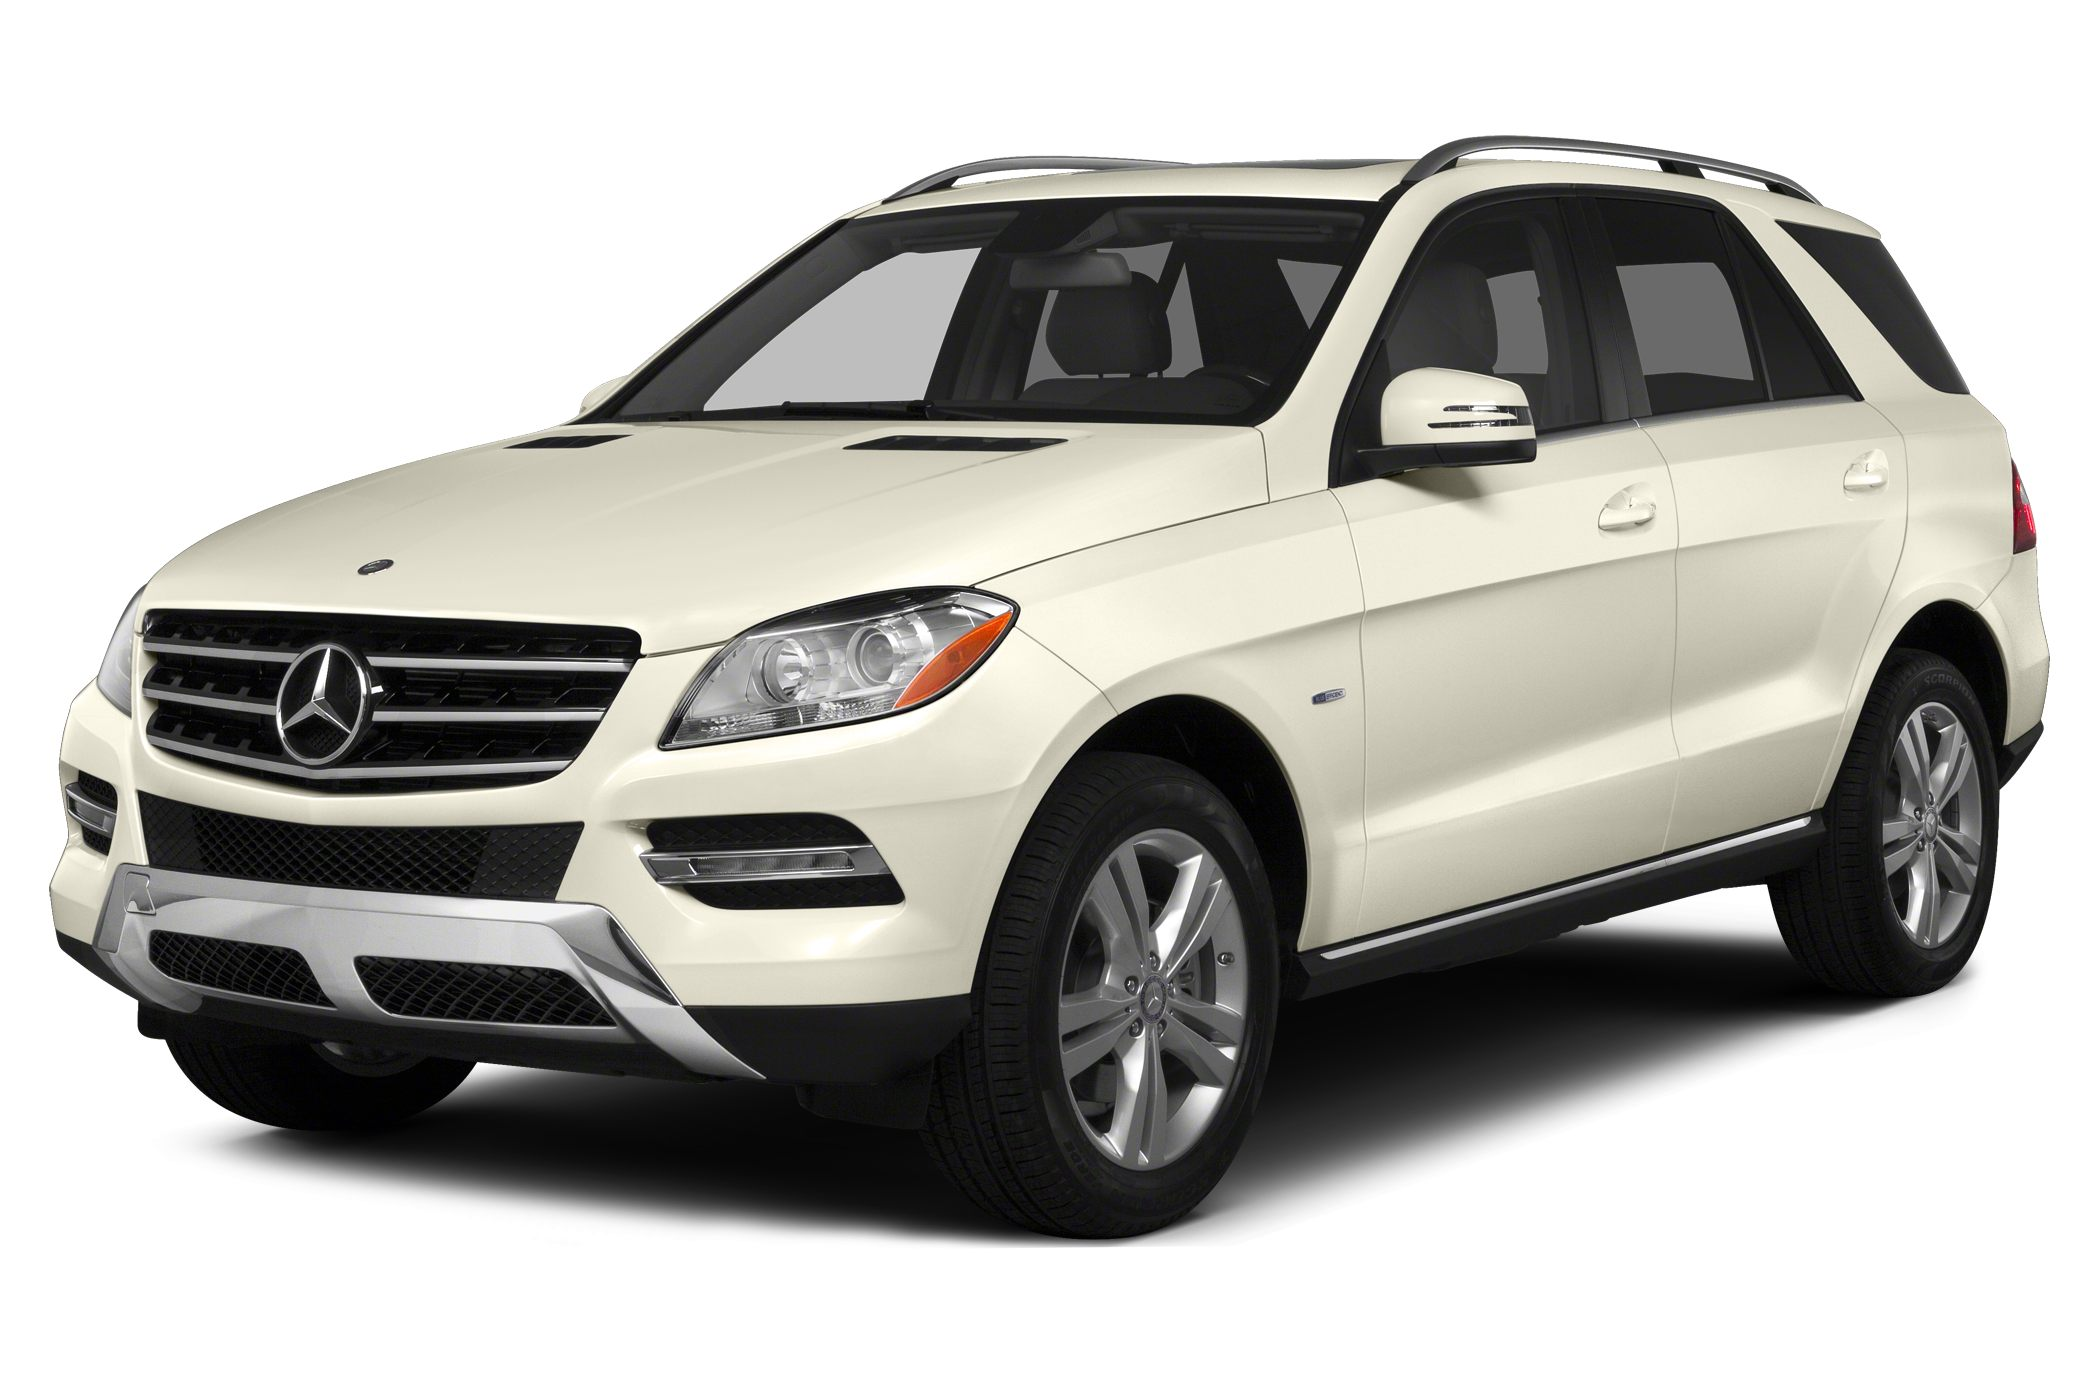 2015 MERCEDES M-Class ML 350 4MATIC  WHEN IT COMES TOEXCELLENCE IN USED CAR SALES YOU KNOW YOU